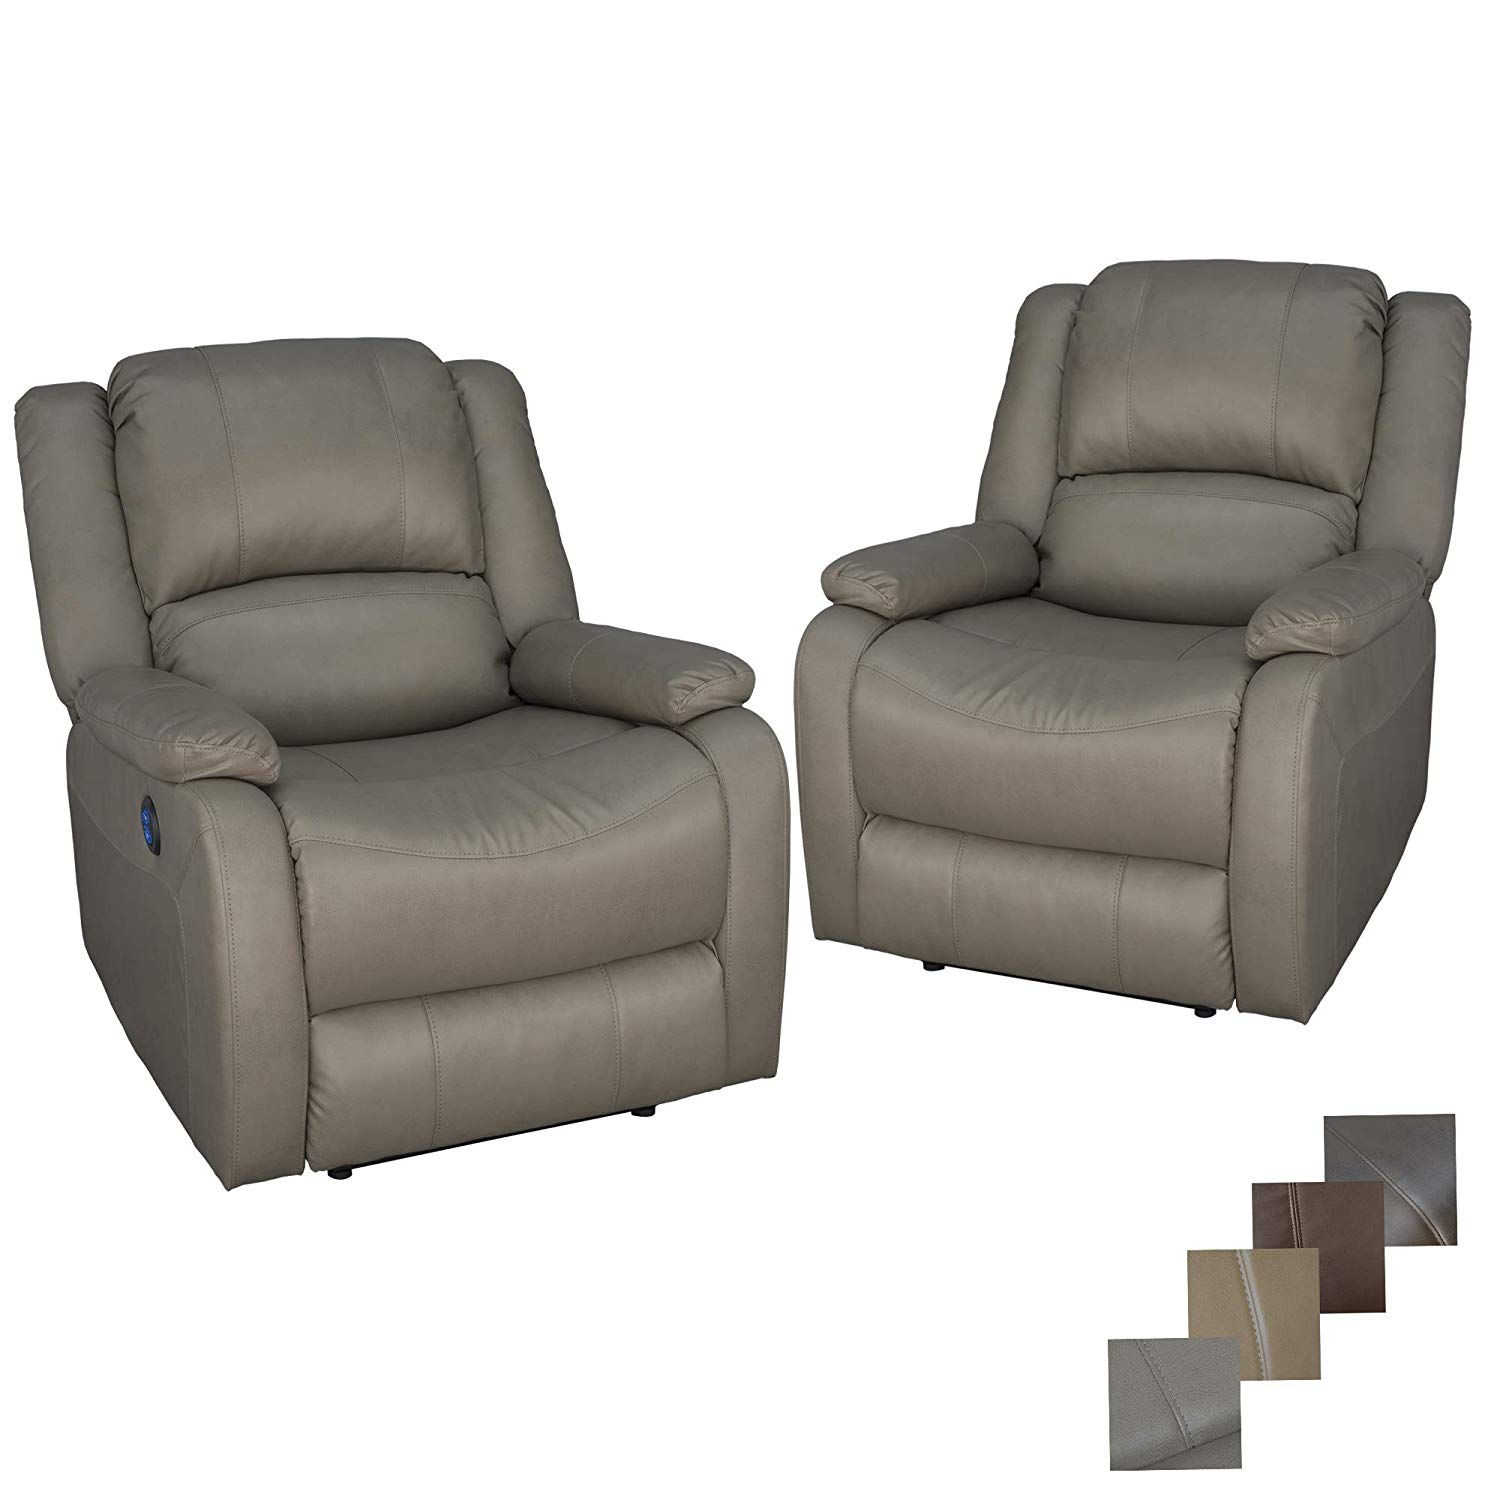 Recpro Charles 30 Powered Rv Wall Hugger Recliner Set Of 2 Zero Wall Powered Reclining Chair For Rvs And Campe Wall Hugger Recliners Recliner Chair Recliner